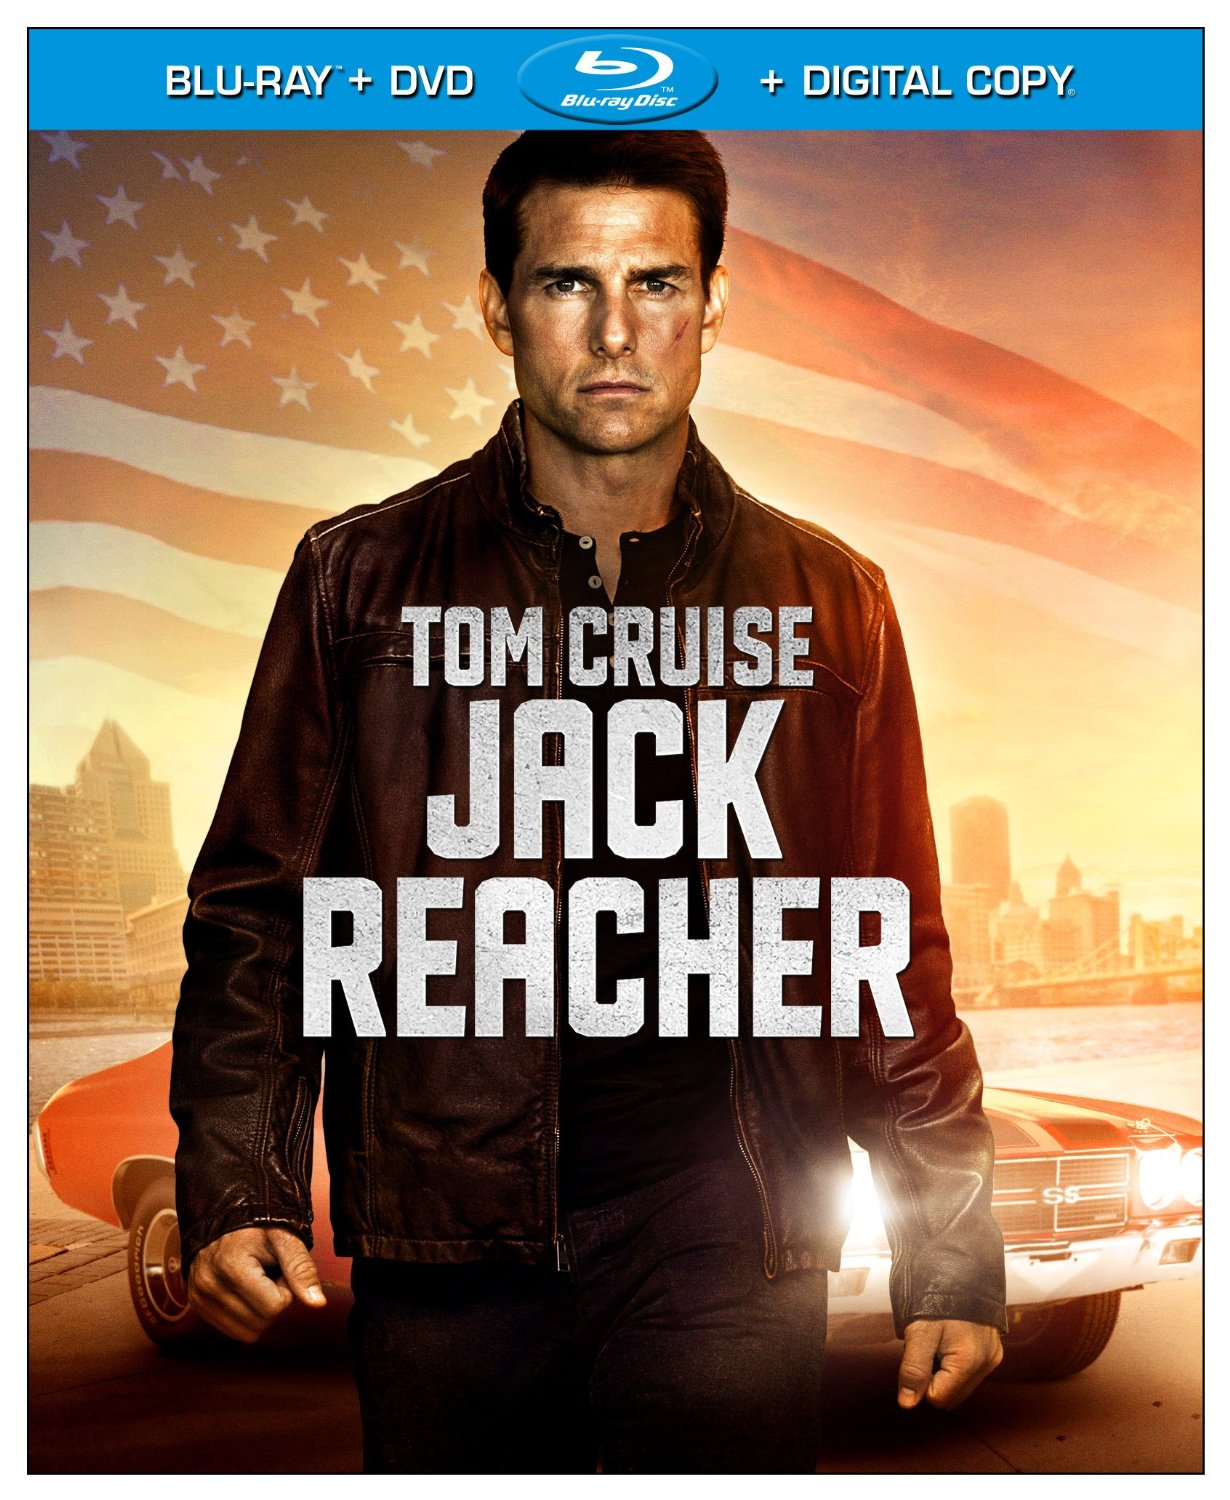 Jack Reacher was released on Blu-ray and DVD on May 7, 2013